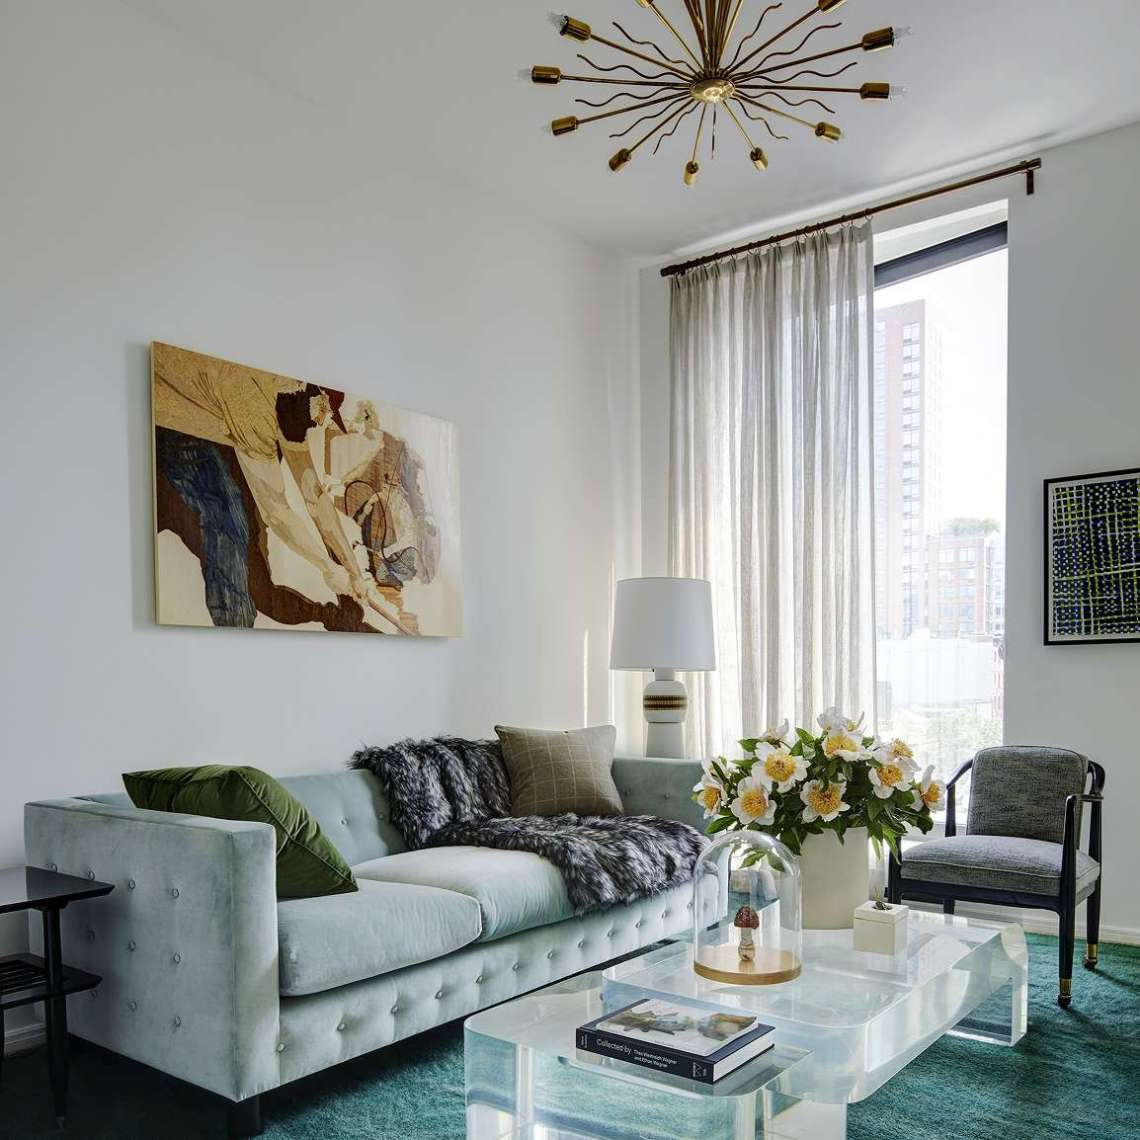 21 Ways To Decorate With Mint Green